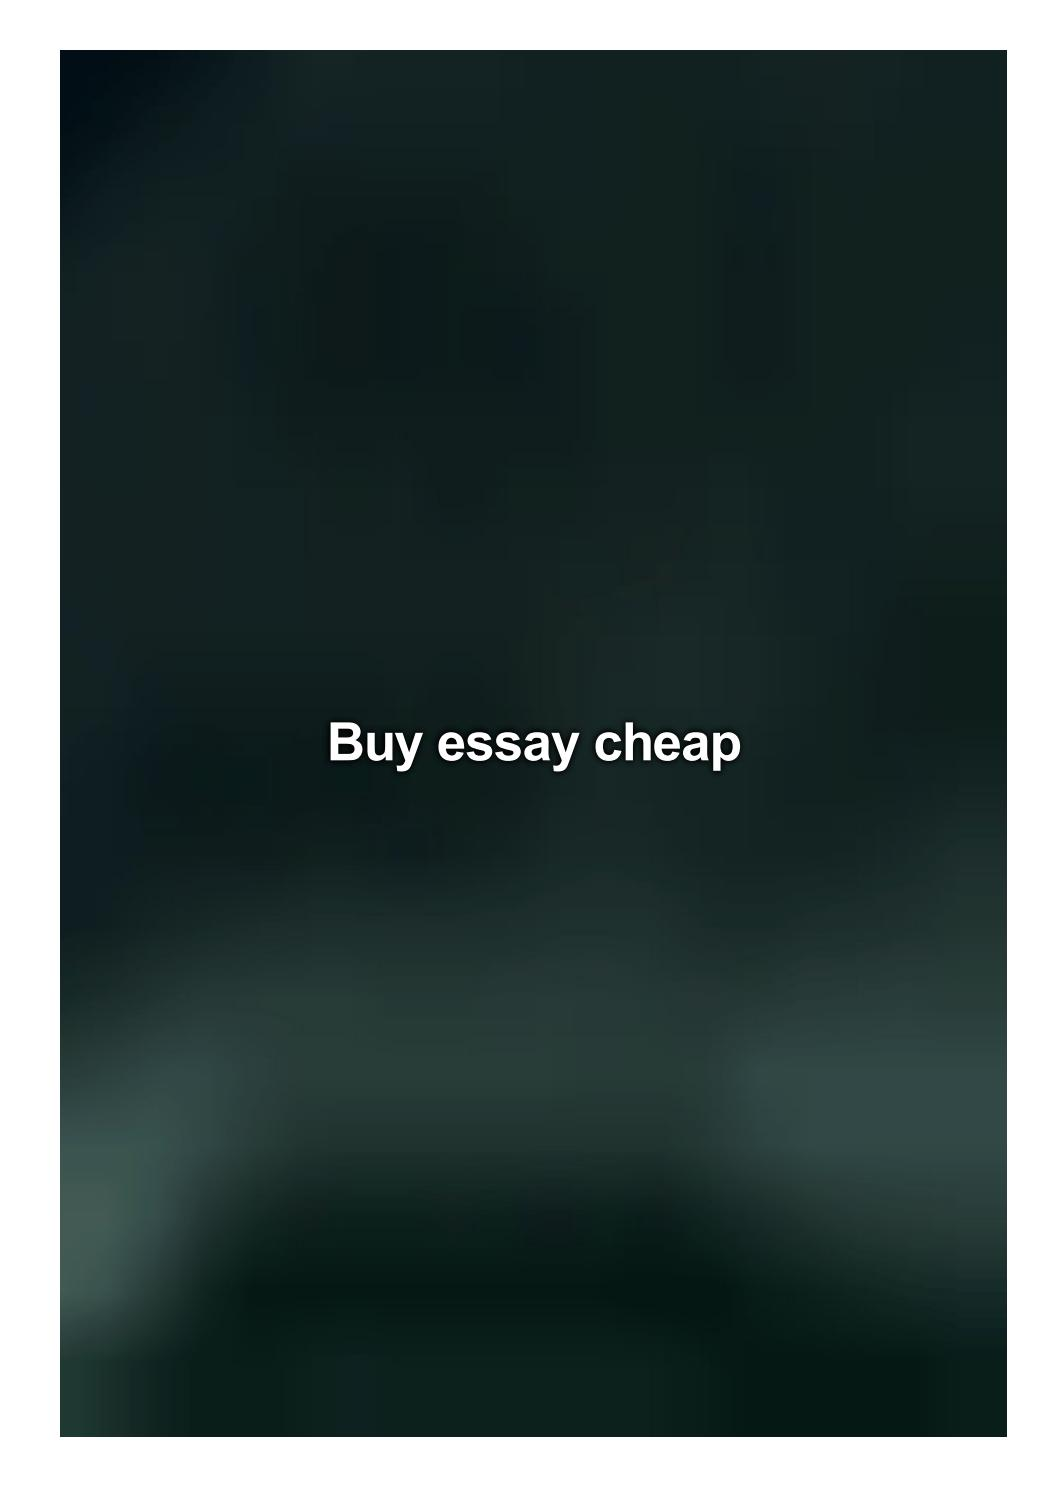 Full Size of Essay By Bolds Angela Issuu Gre Writing Short Narrative Counter Argument Paragraph Buy Cheap